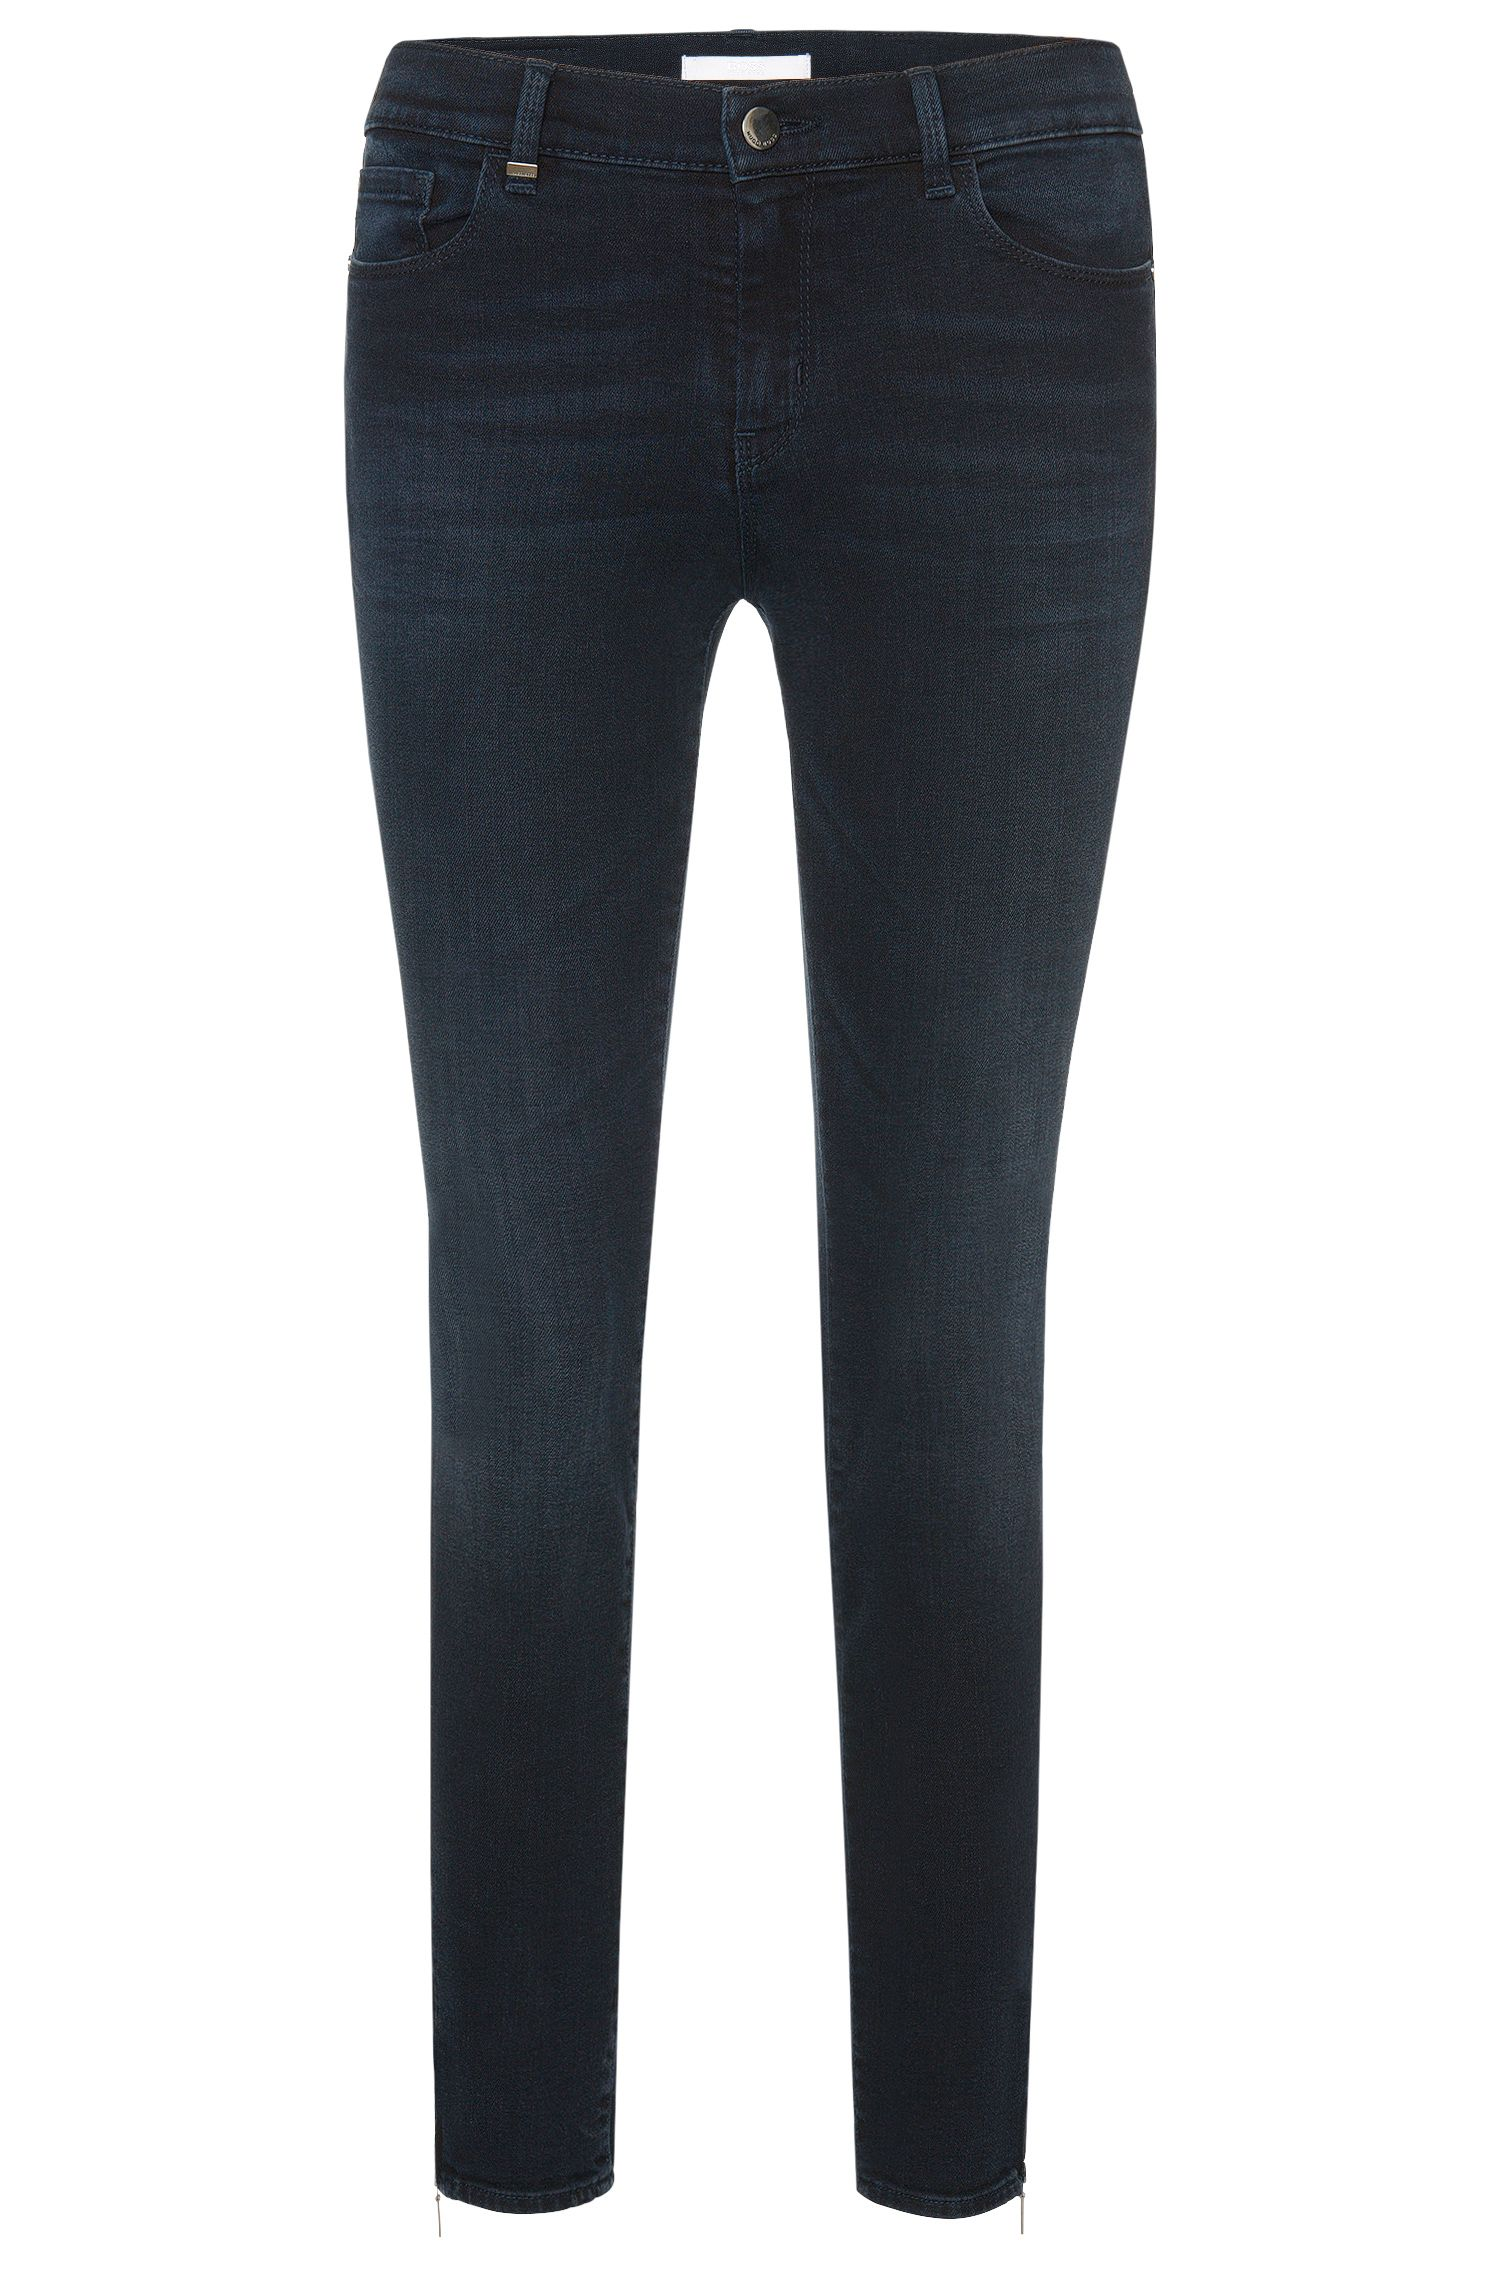 Slim-Fit Jeans aus Baumwoll-Mix in Cropped-Länge: 'Nafice Zip'